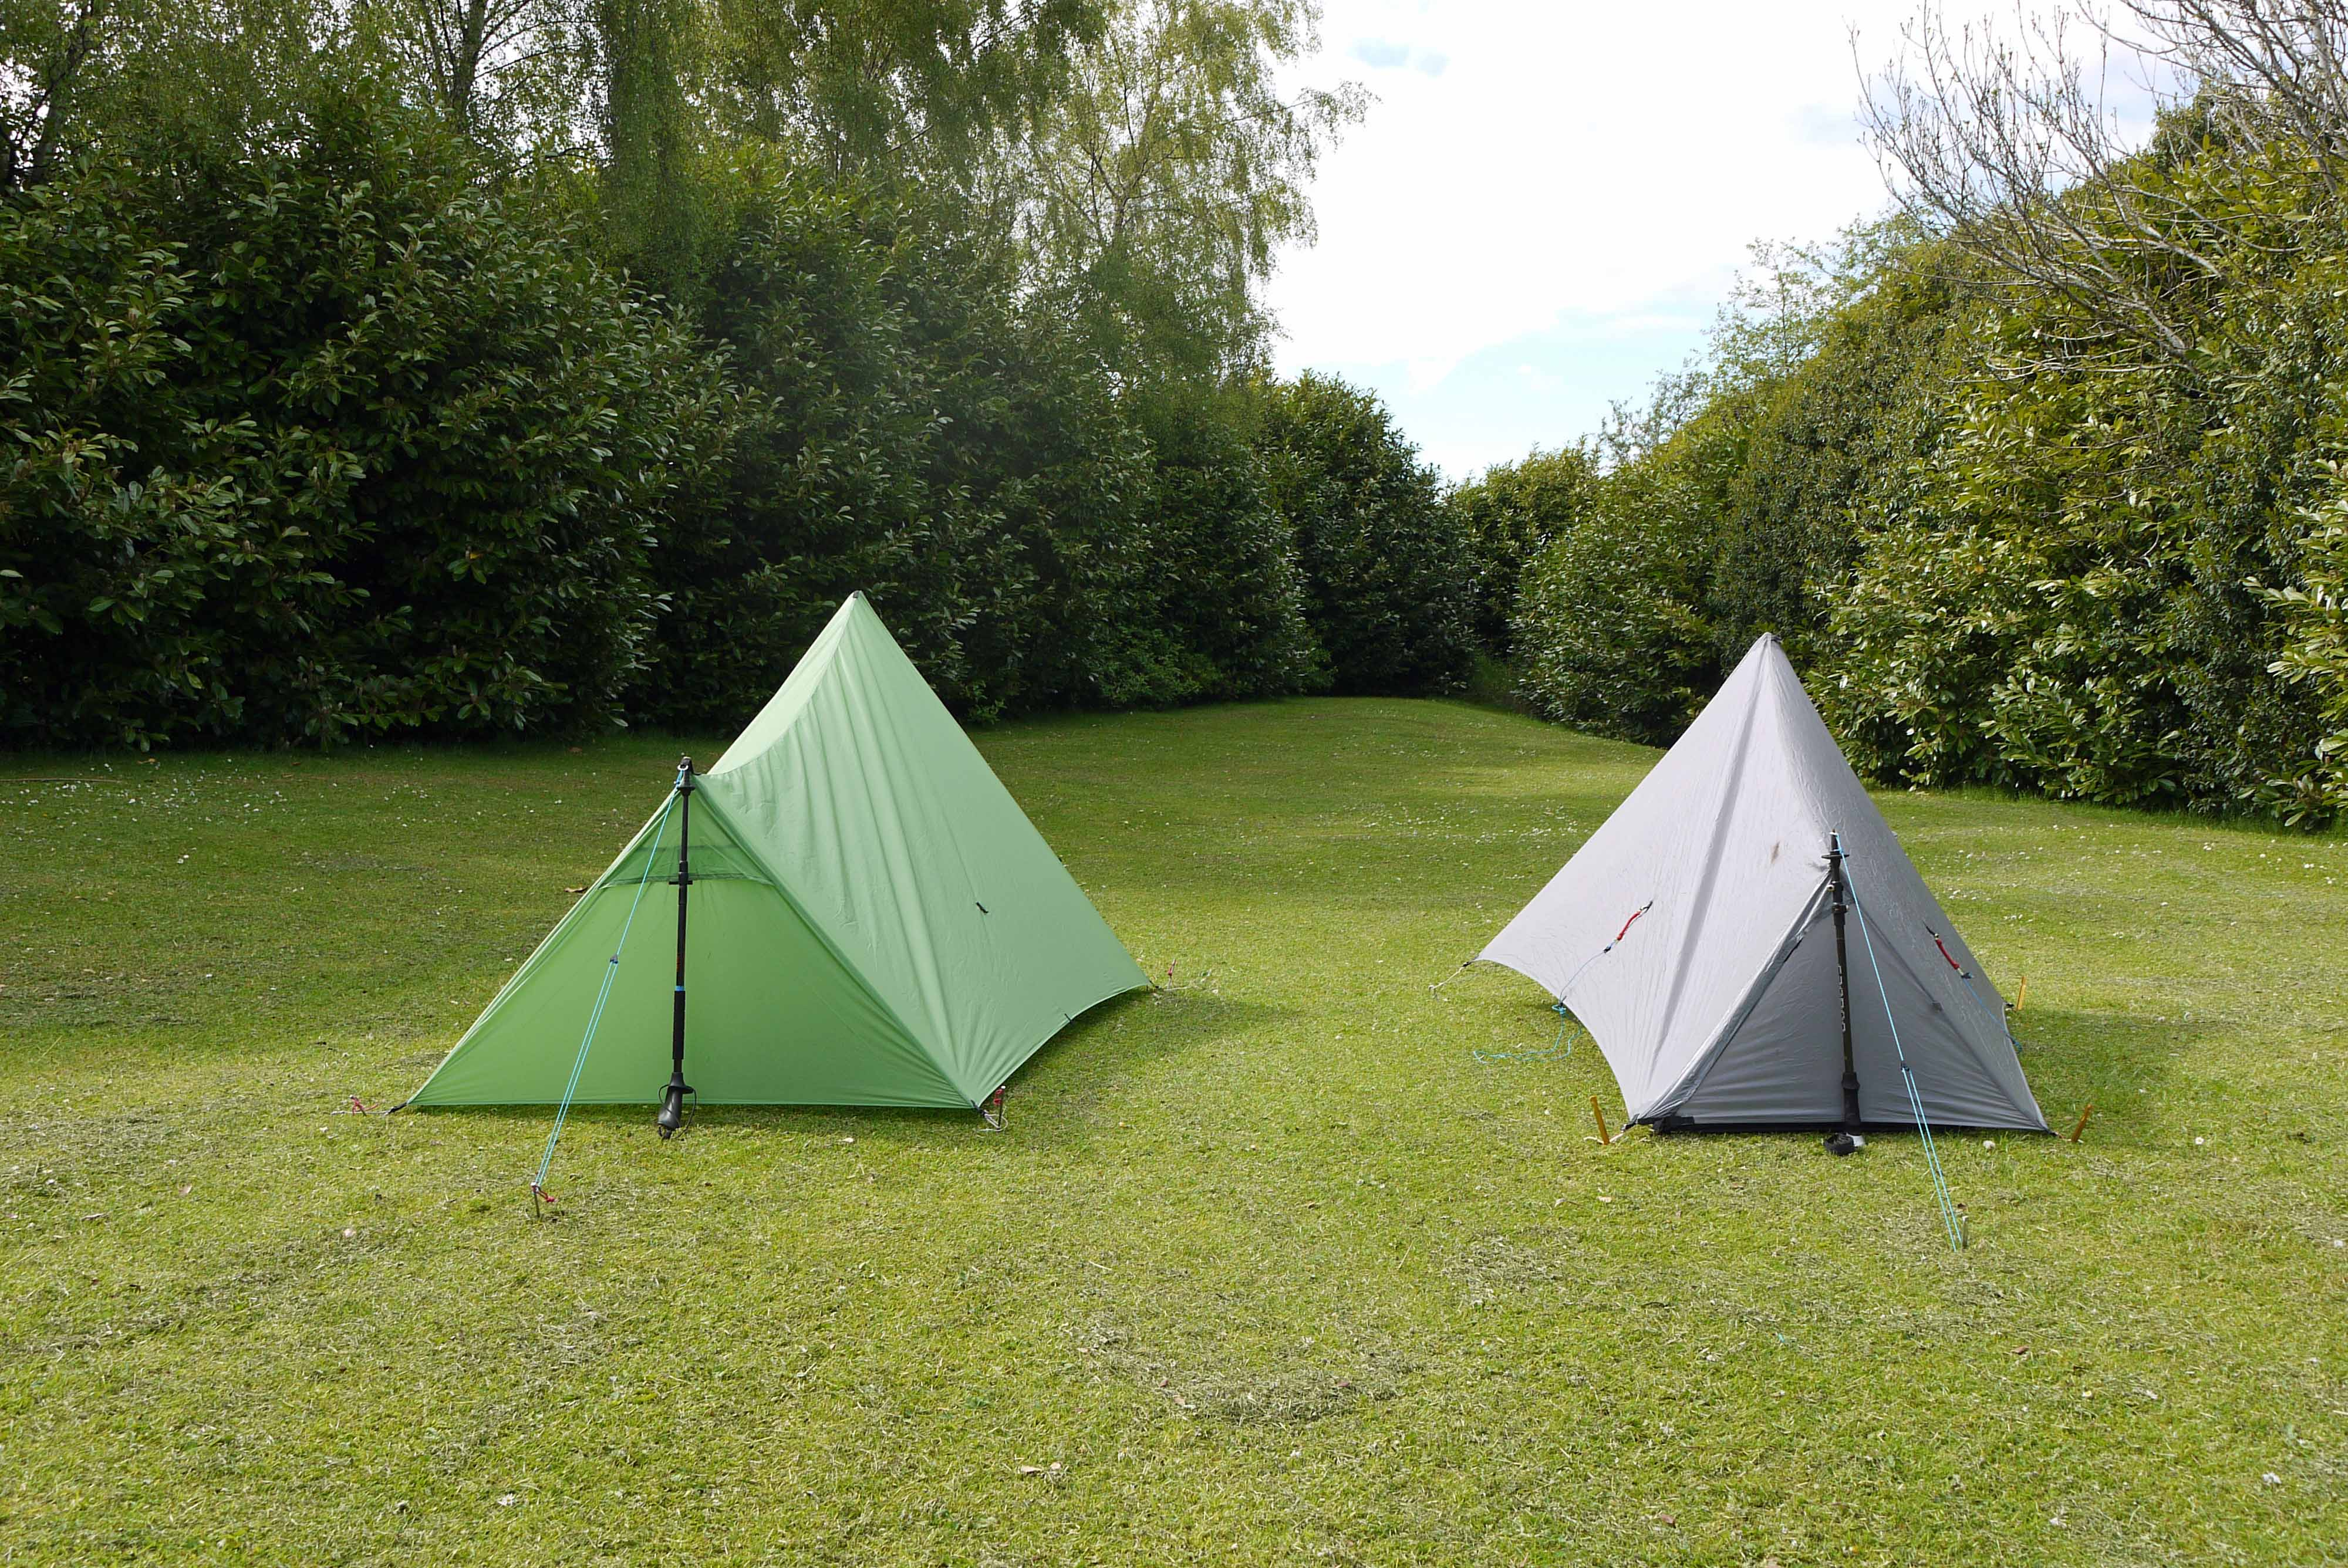 trekkertent stealth 1.5 comparison